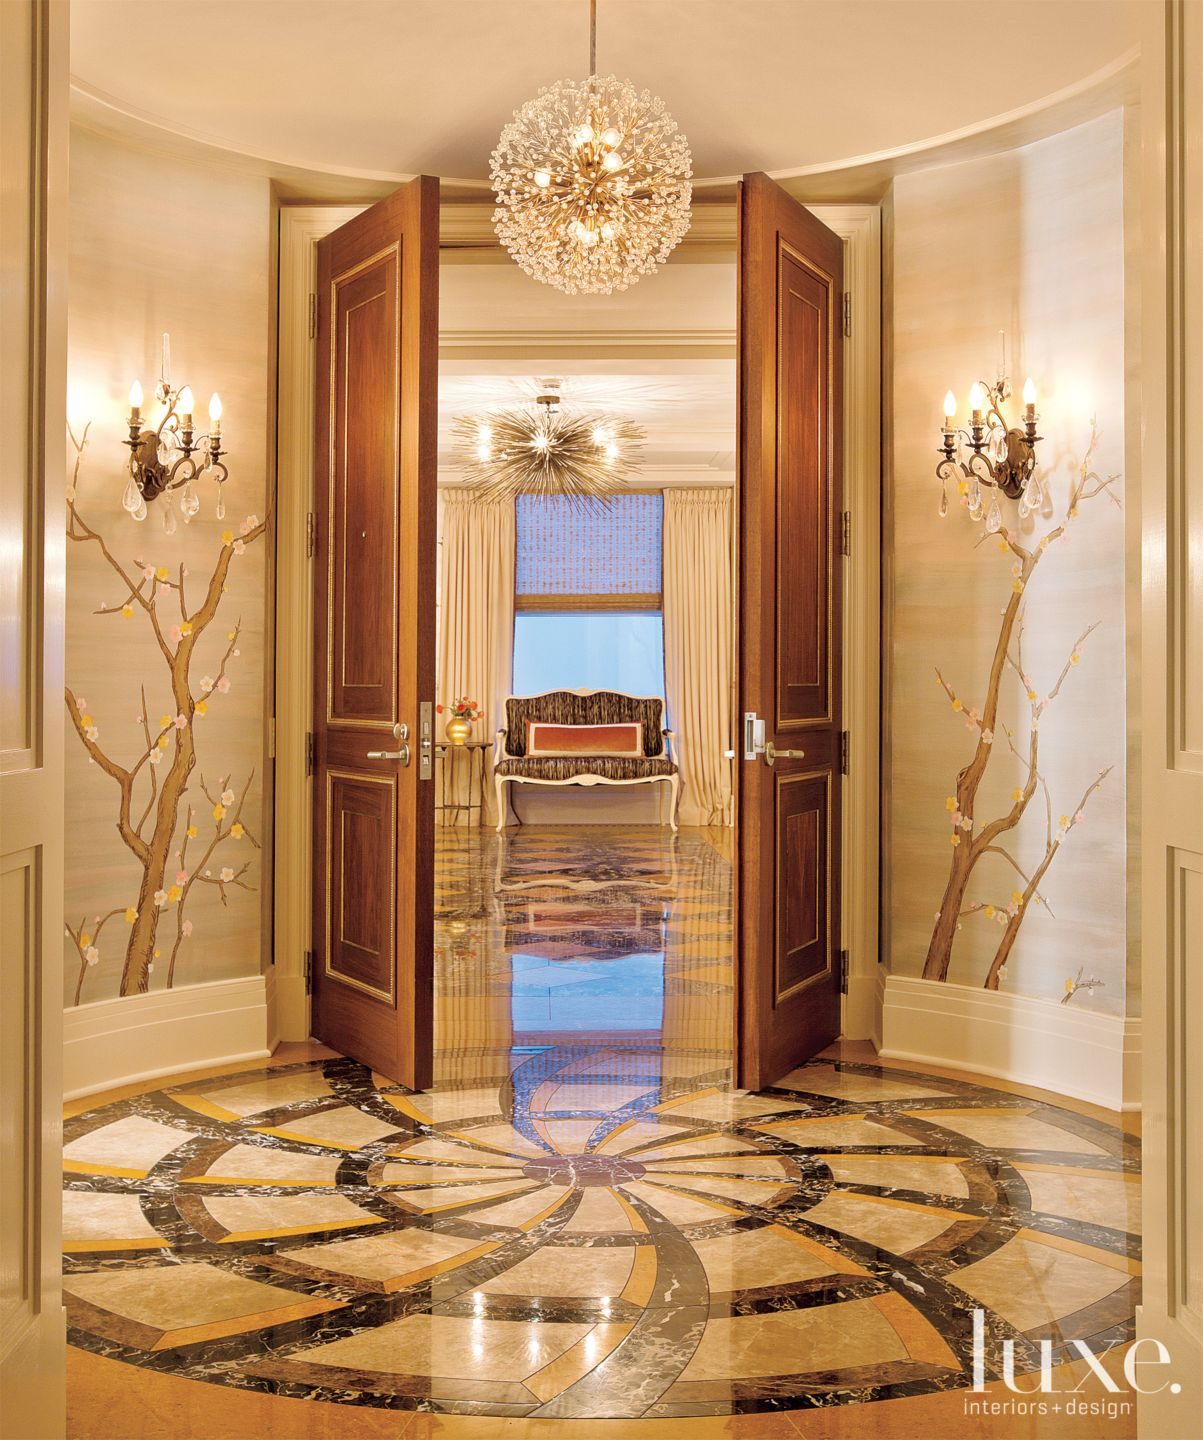 Eclectic Gold Foyer with Floral Wall Motif